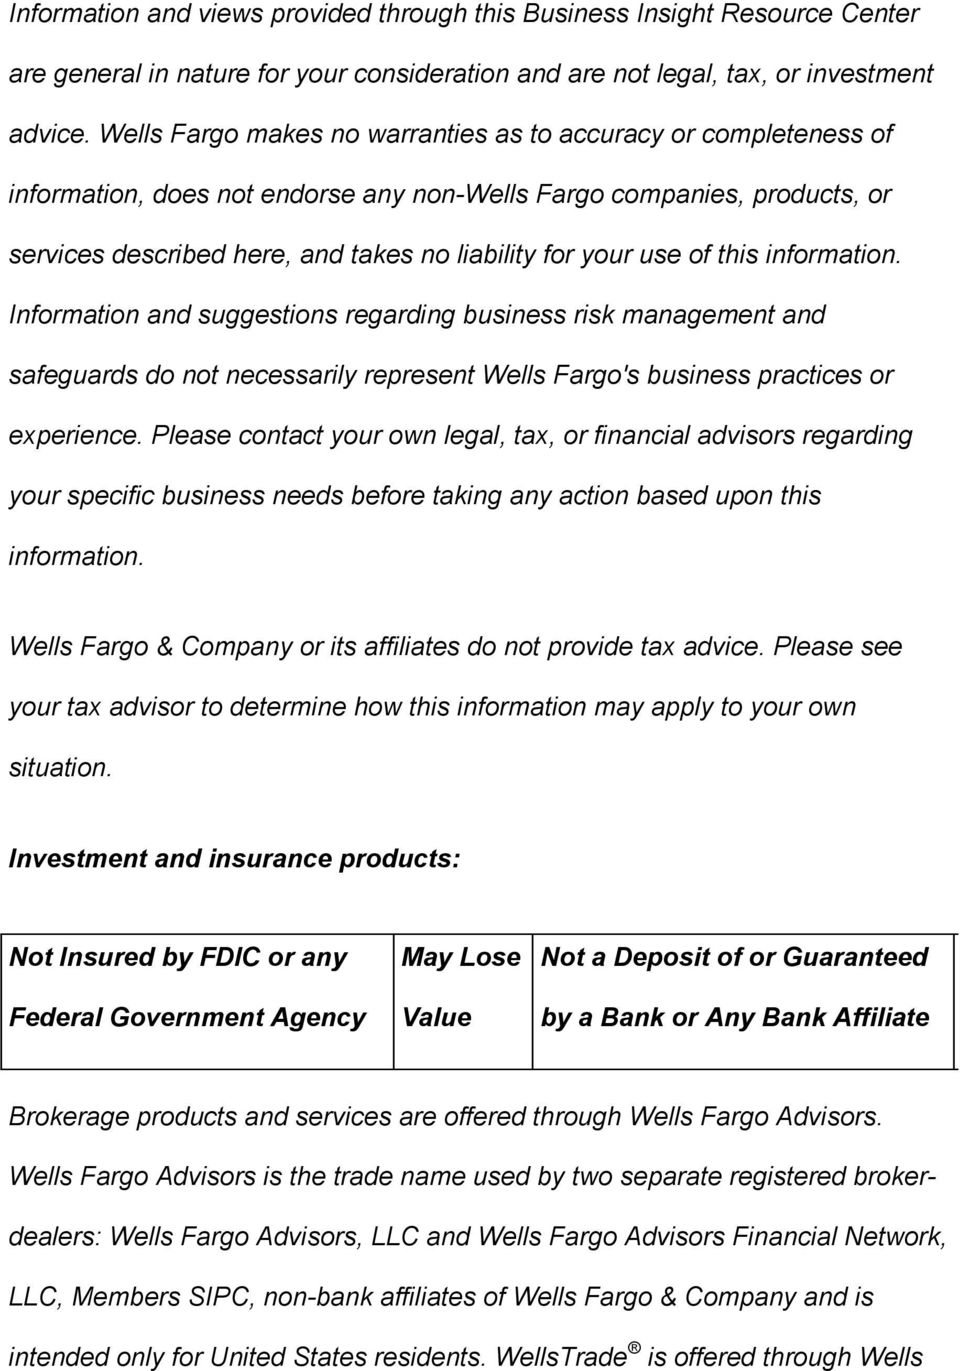 use of this information. Information and suggestions regarding business risk management and safeguards do not necessarily represent Wells Fargo's business practices or experience.